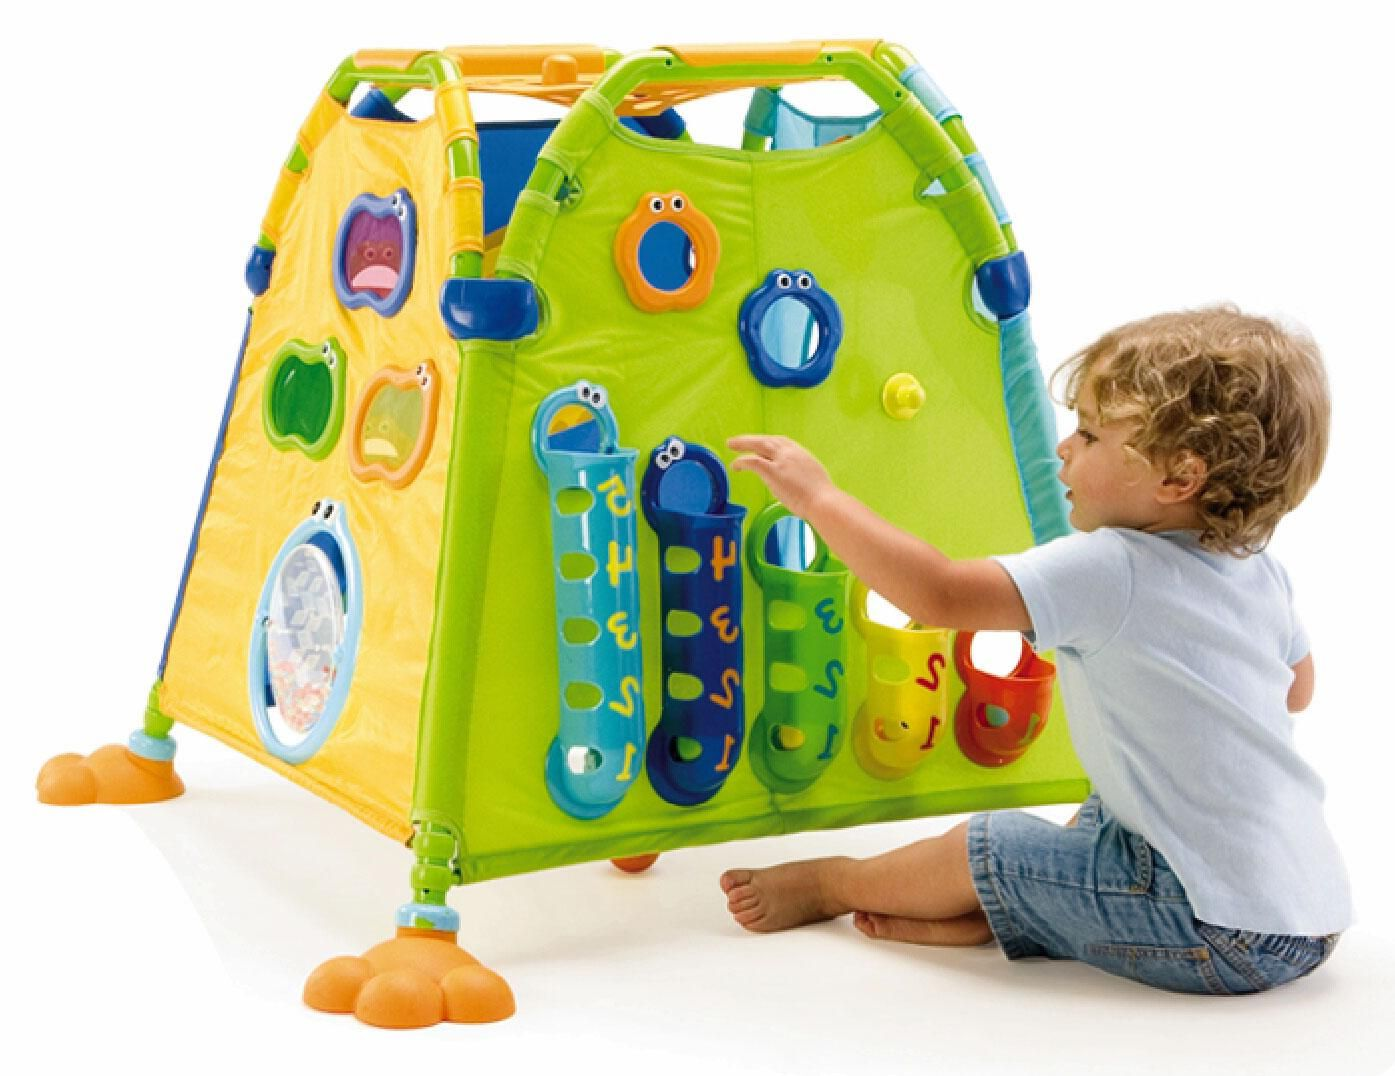 Musical Toys For 1 Year Olds : Discovery dome play set for annabel pinterest baby toys